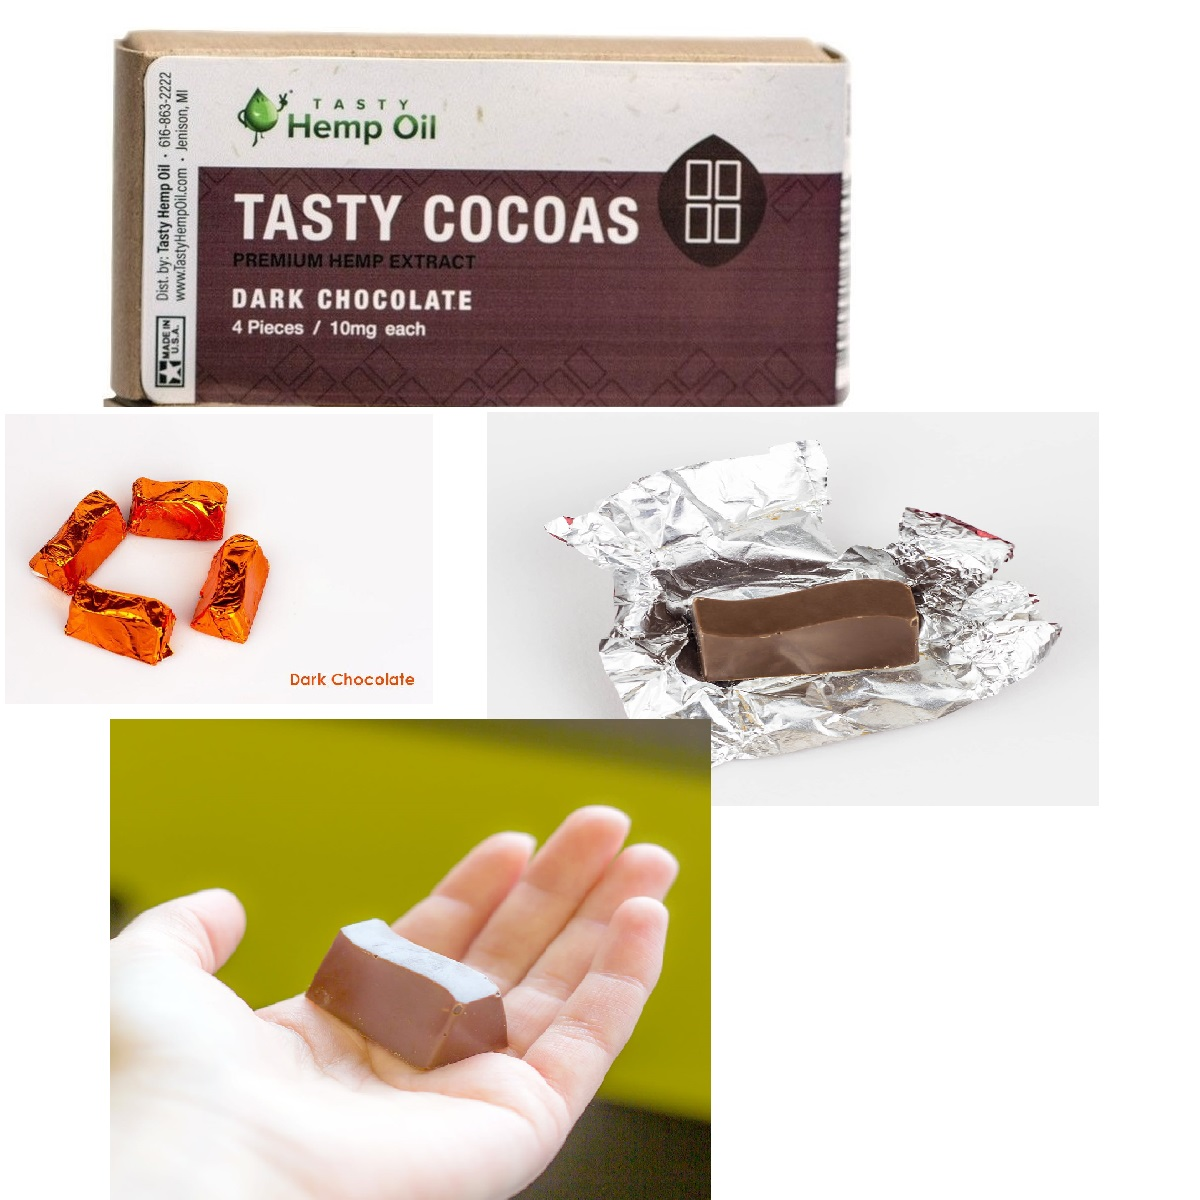 Tasty Cocoas Premium Hemp Oil Dark Chocolate (10mg CBD each)